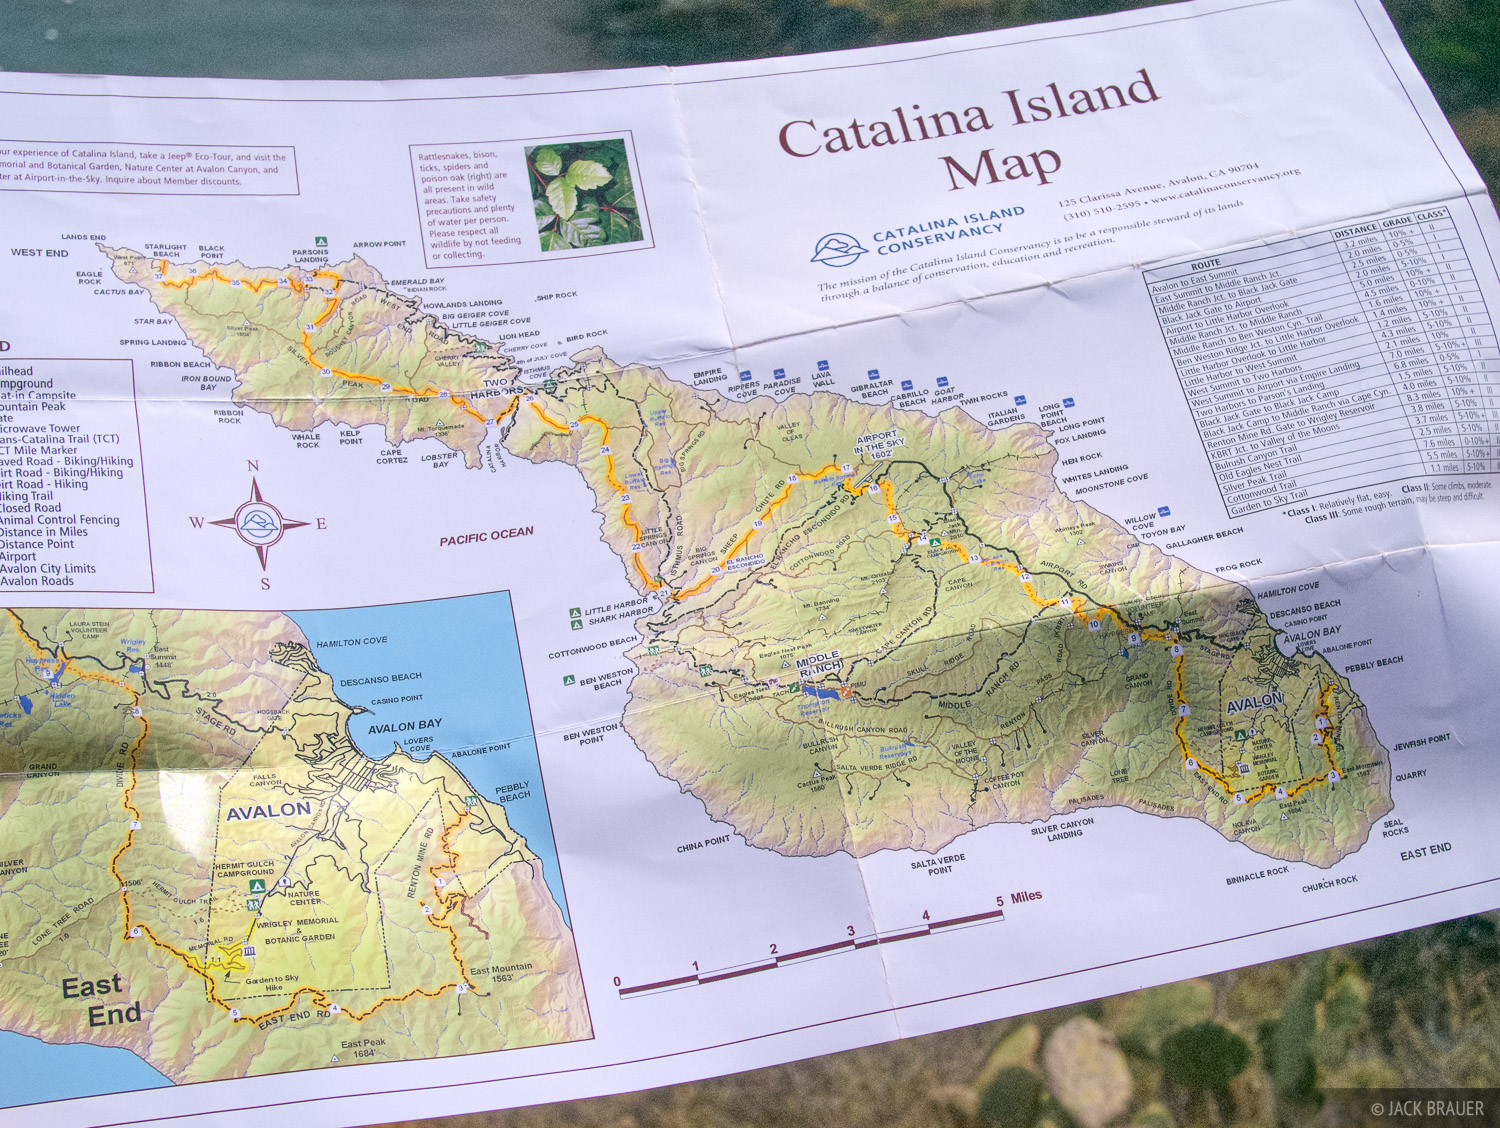 California, Catalina Island, map, photo